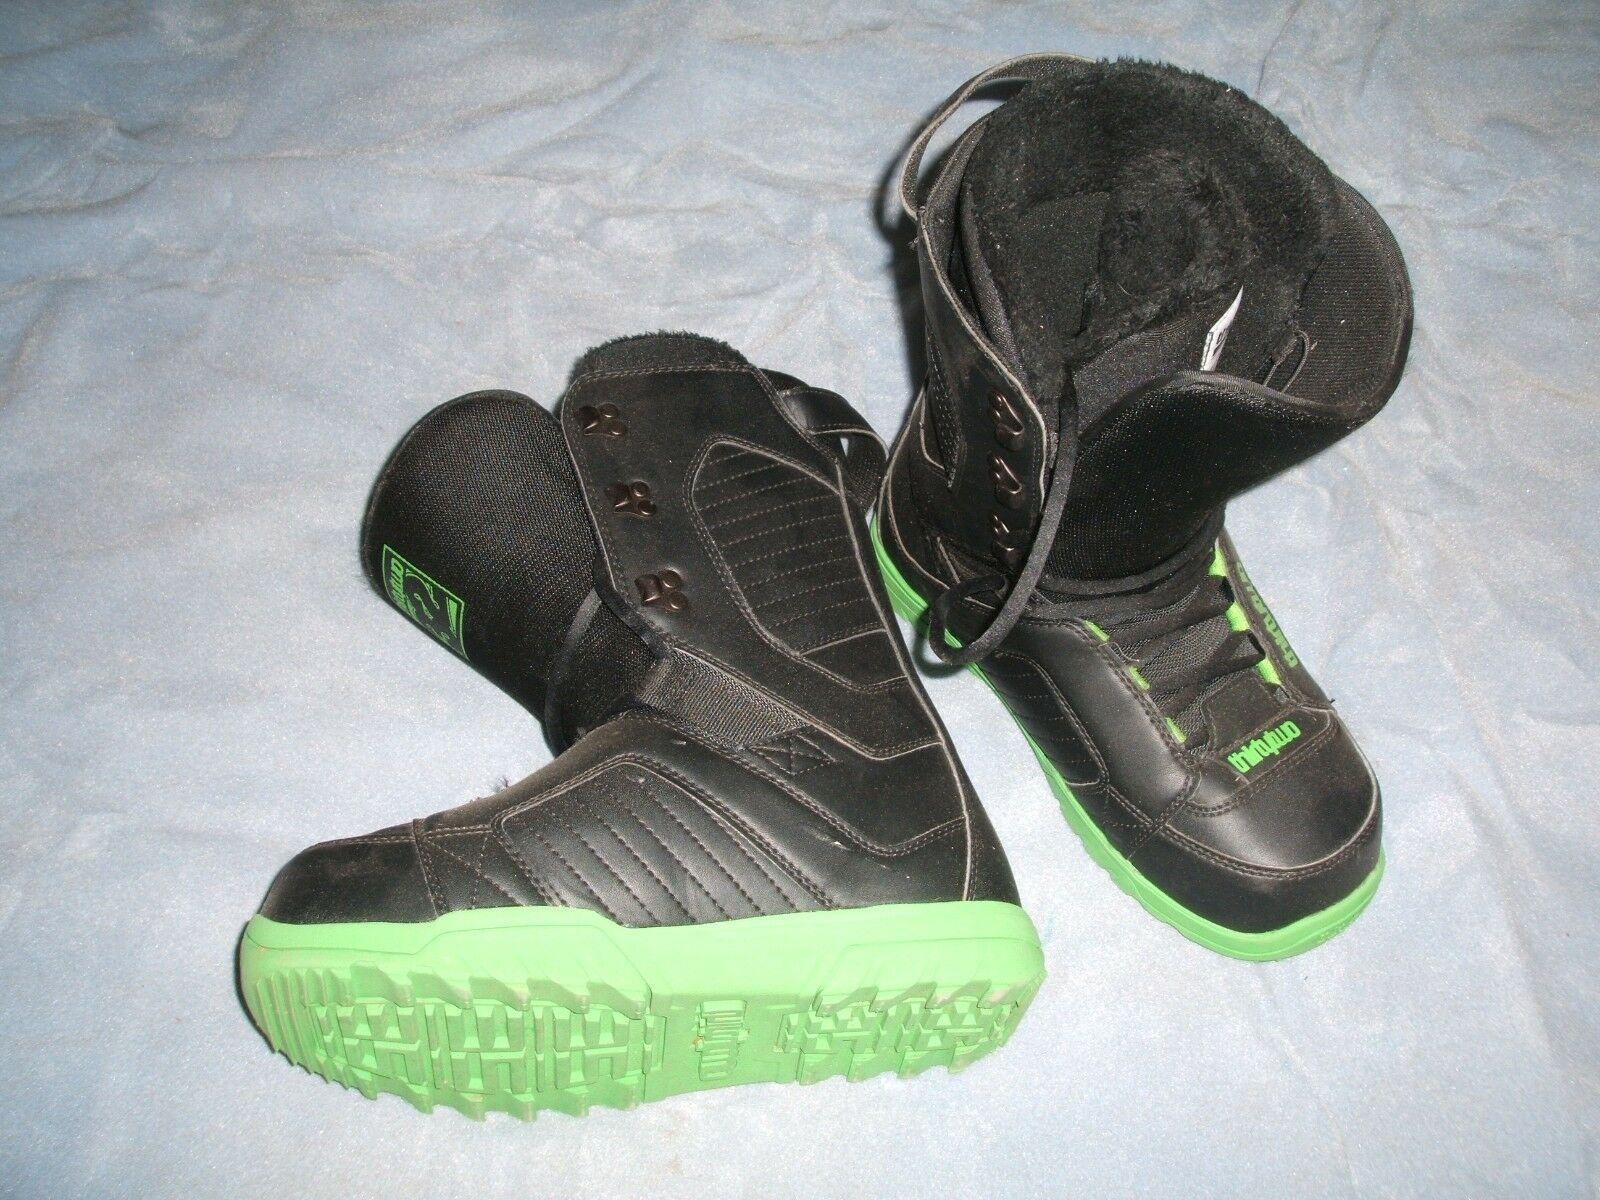 Thirty Two 32 Exus Snowboard Boots Size  9 Excellent Condition ONLY  50  high quality & fast shipping